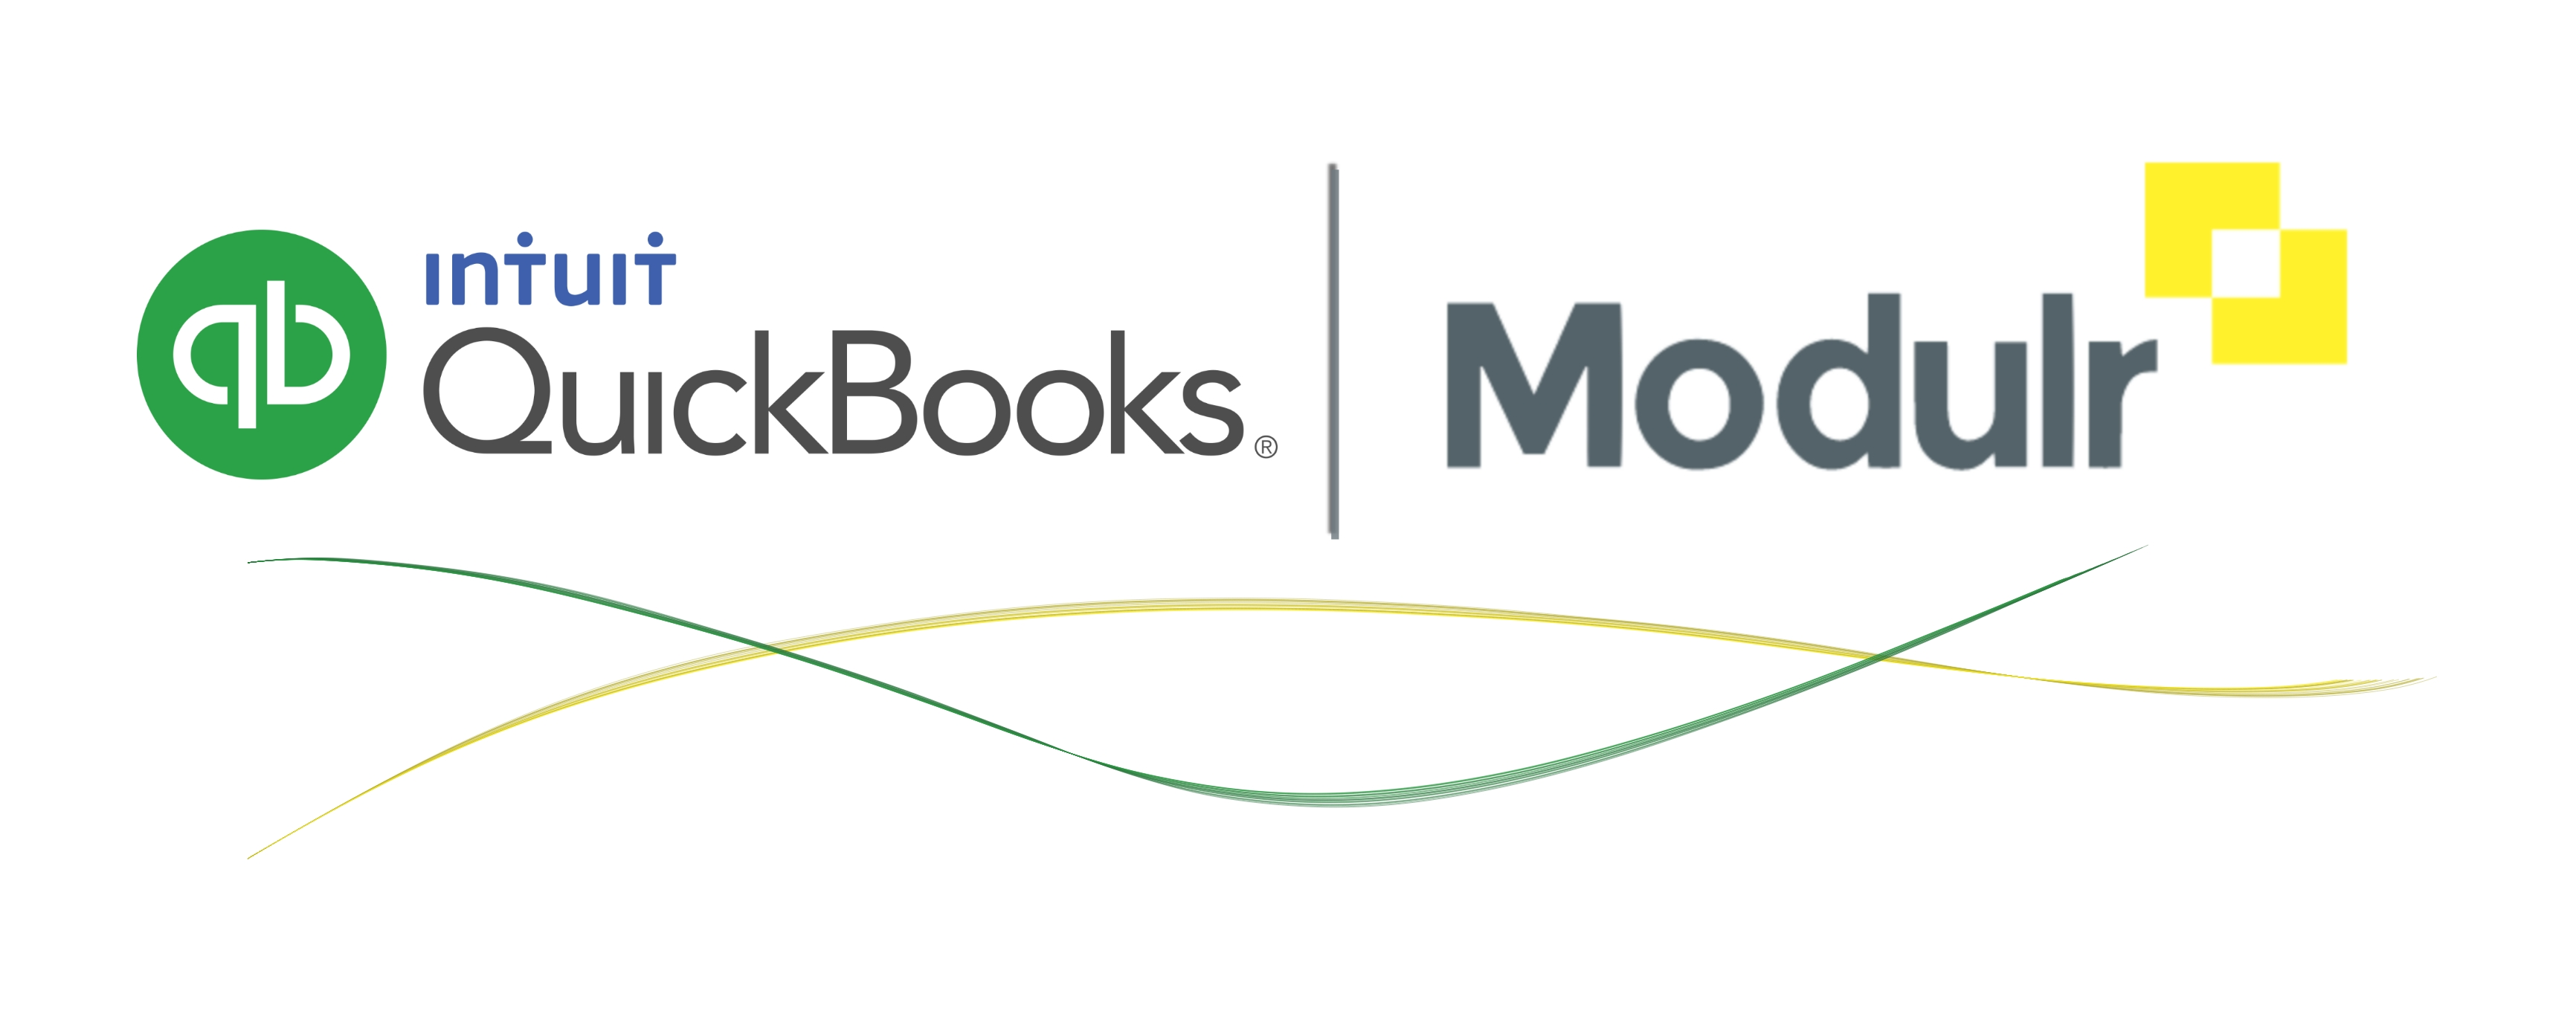 QuickBooks Announces Agreement with Modulr to Power New QuickBooks Business Account